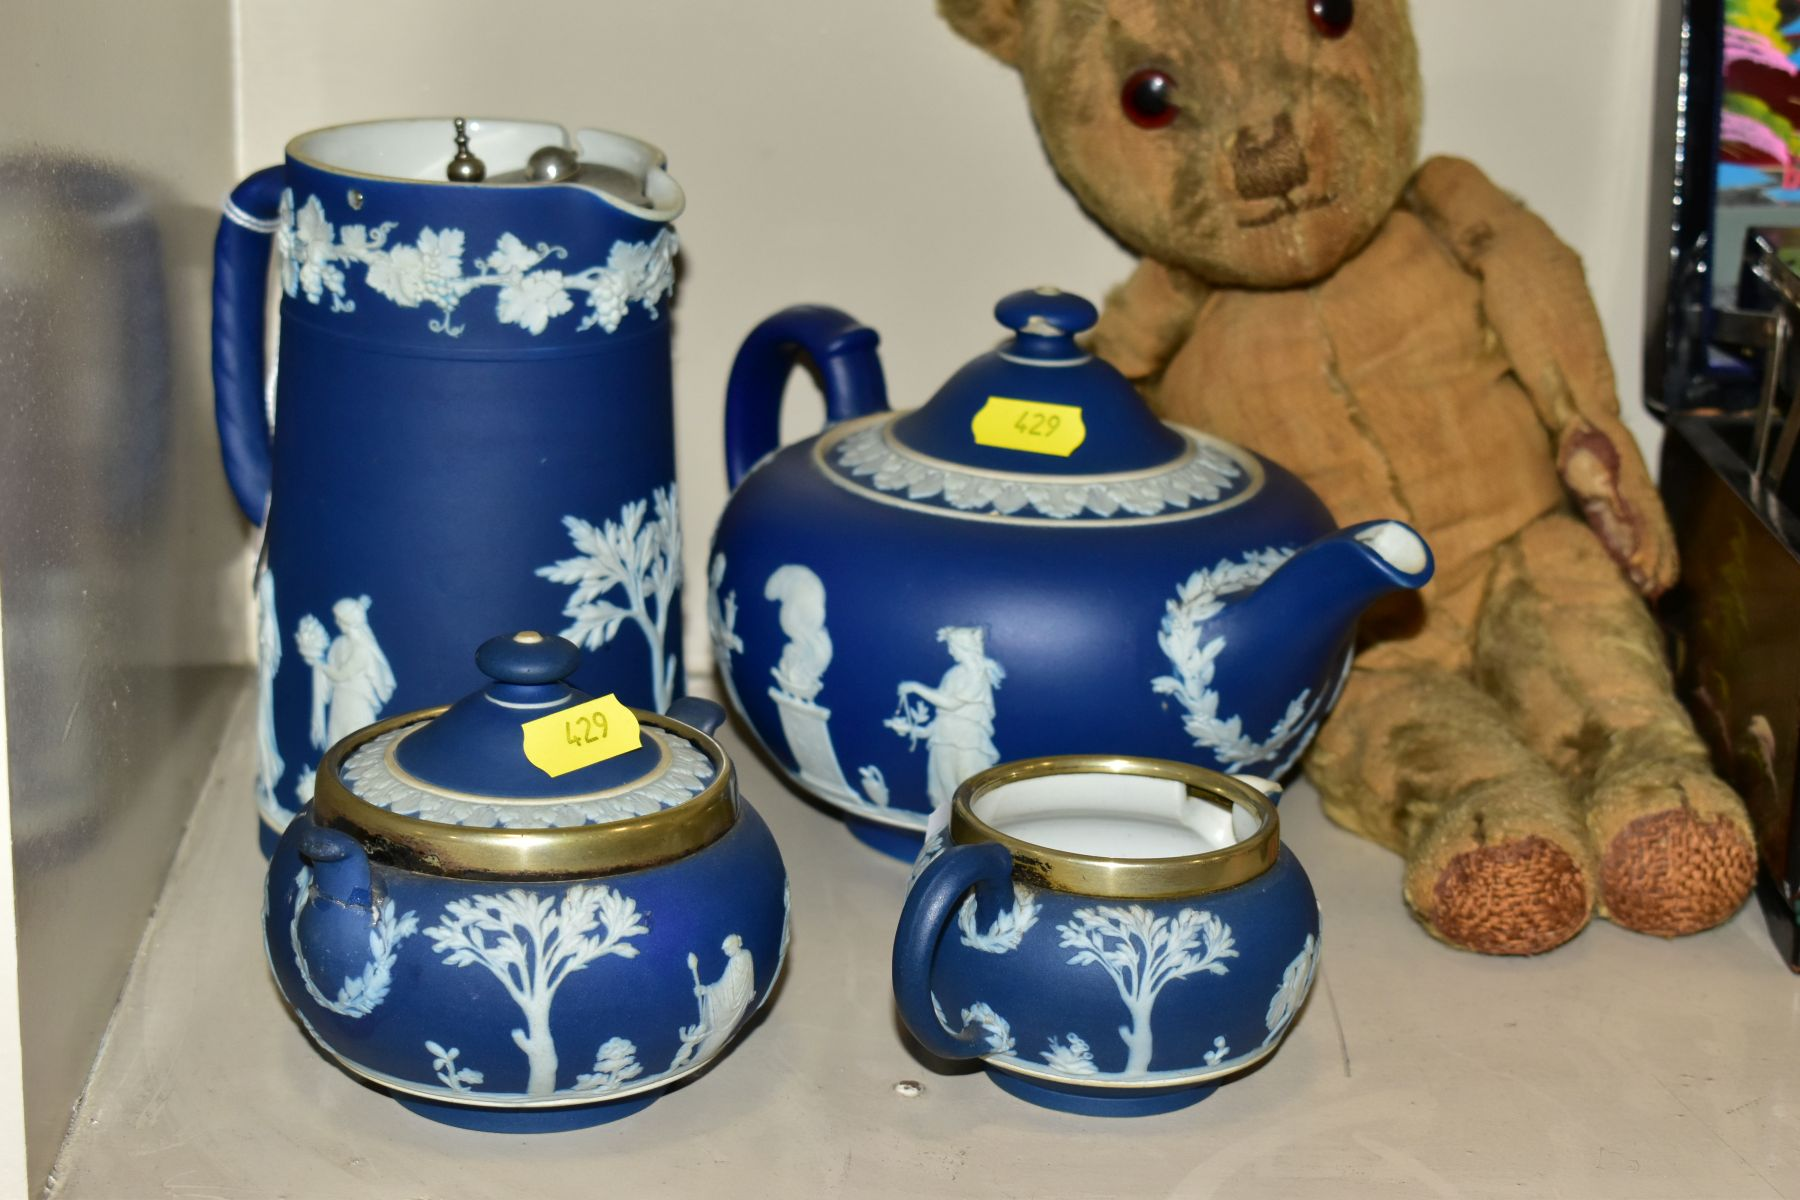 A GROUP OF ASSORTED ITEMS, including Wedgwood jasperware tea pot (lid has chips), hot water jug, - Image 7 of 18